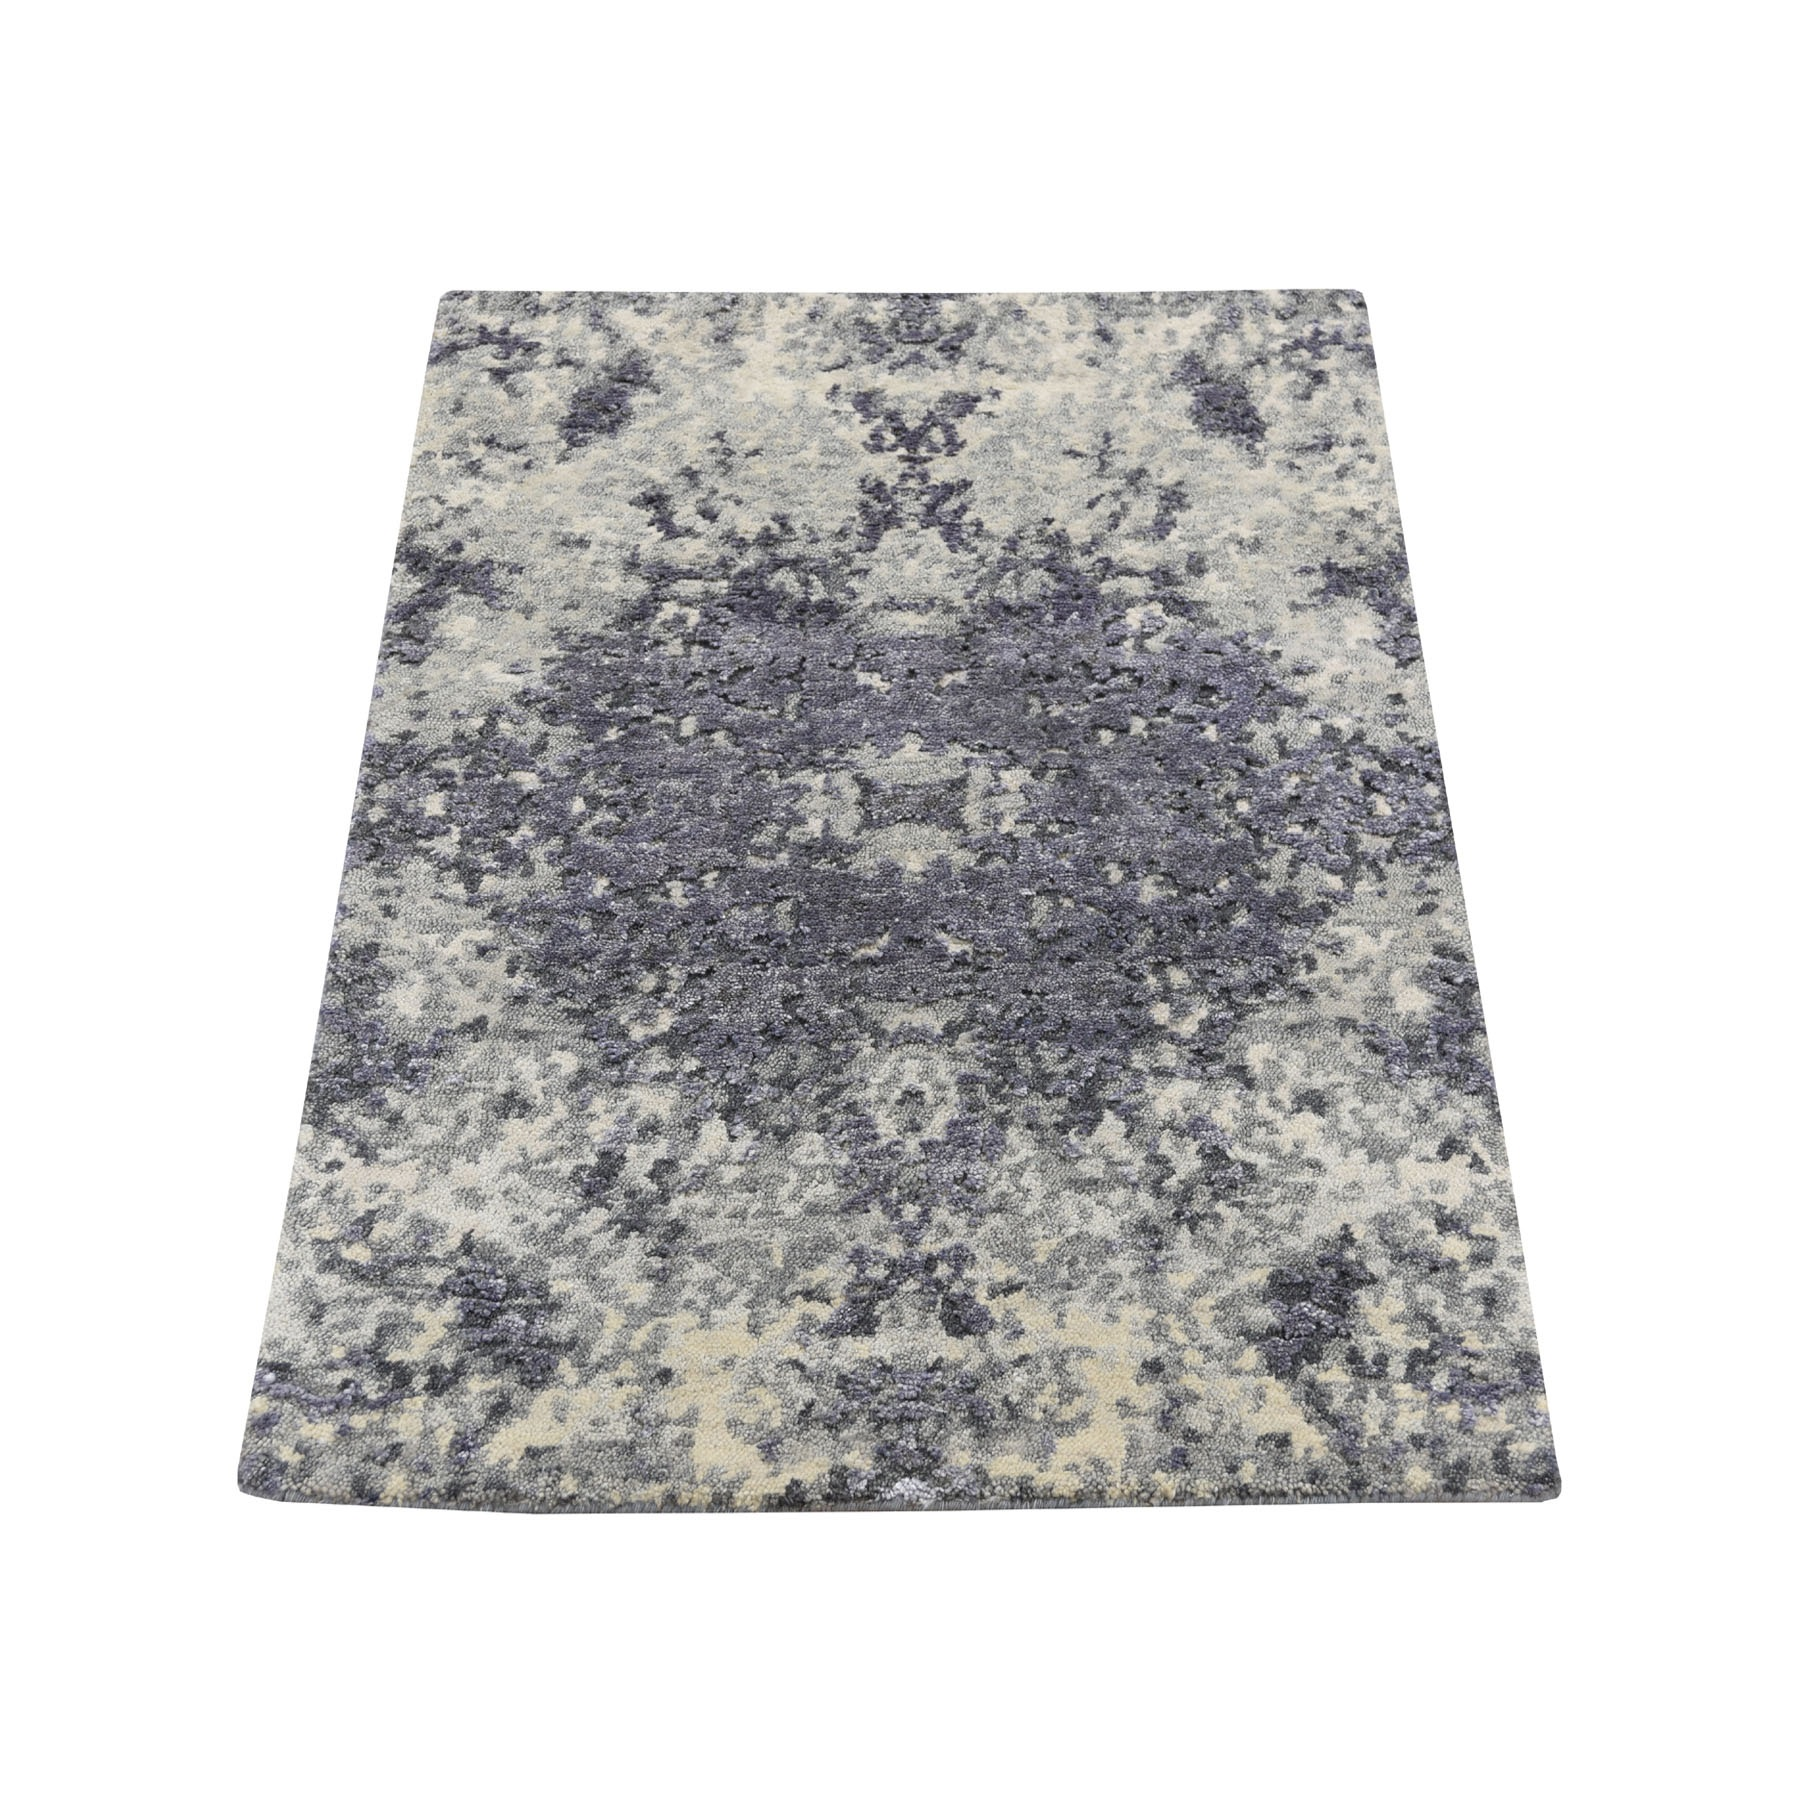 2'X3' Sample Lavender Abstract Design Wool And Silk Hand-Knotted Oriental Rug moad68ce